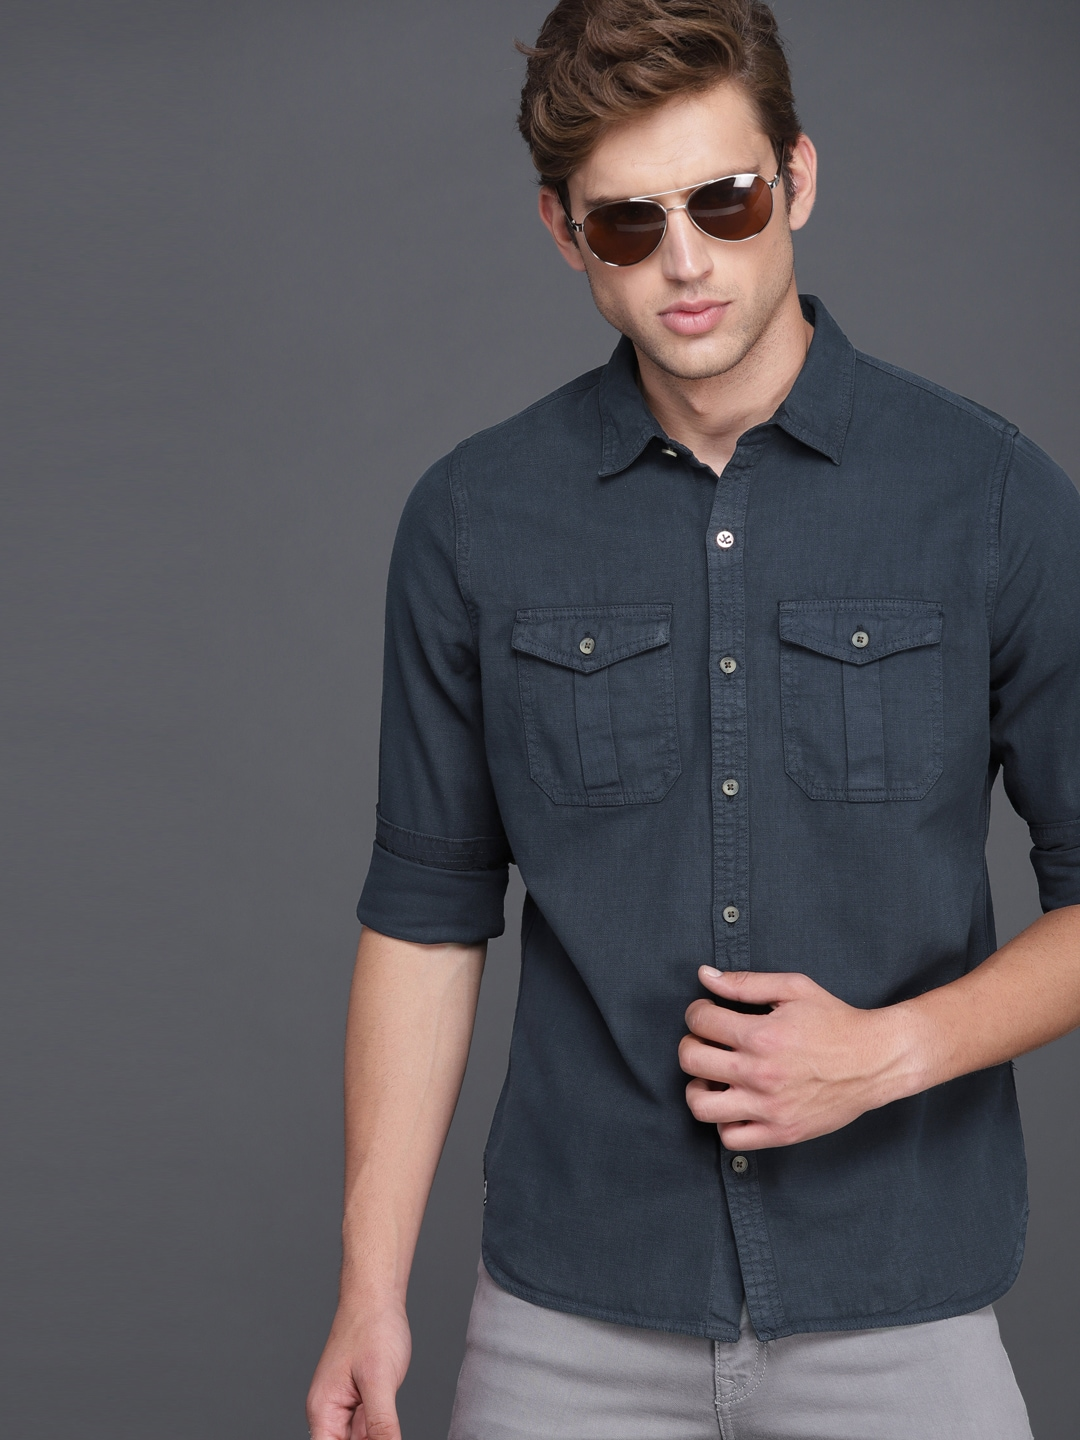 WROGN Men Charcoal Grey Slim Fit Solid Casual Shirt